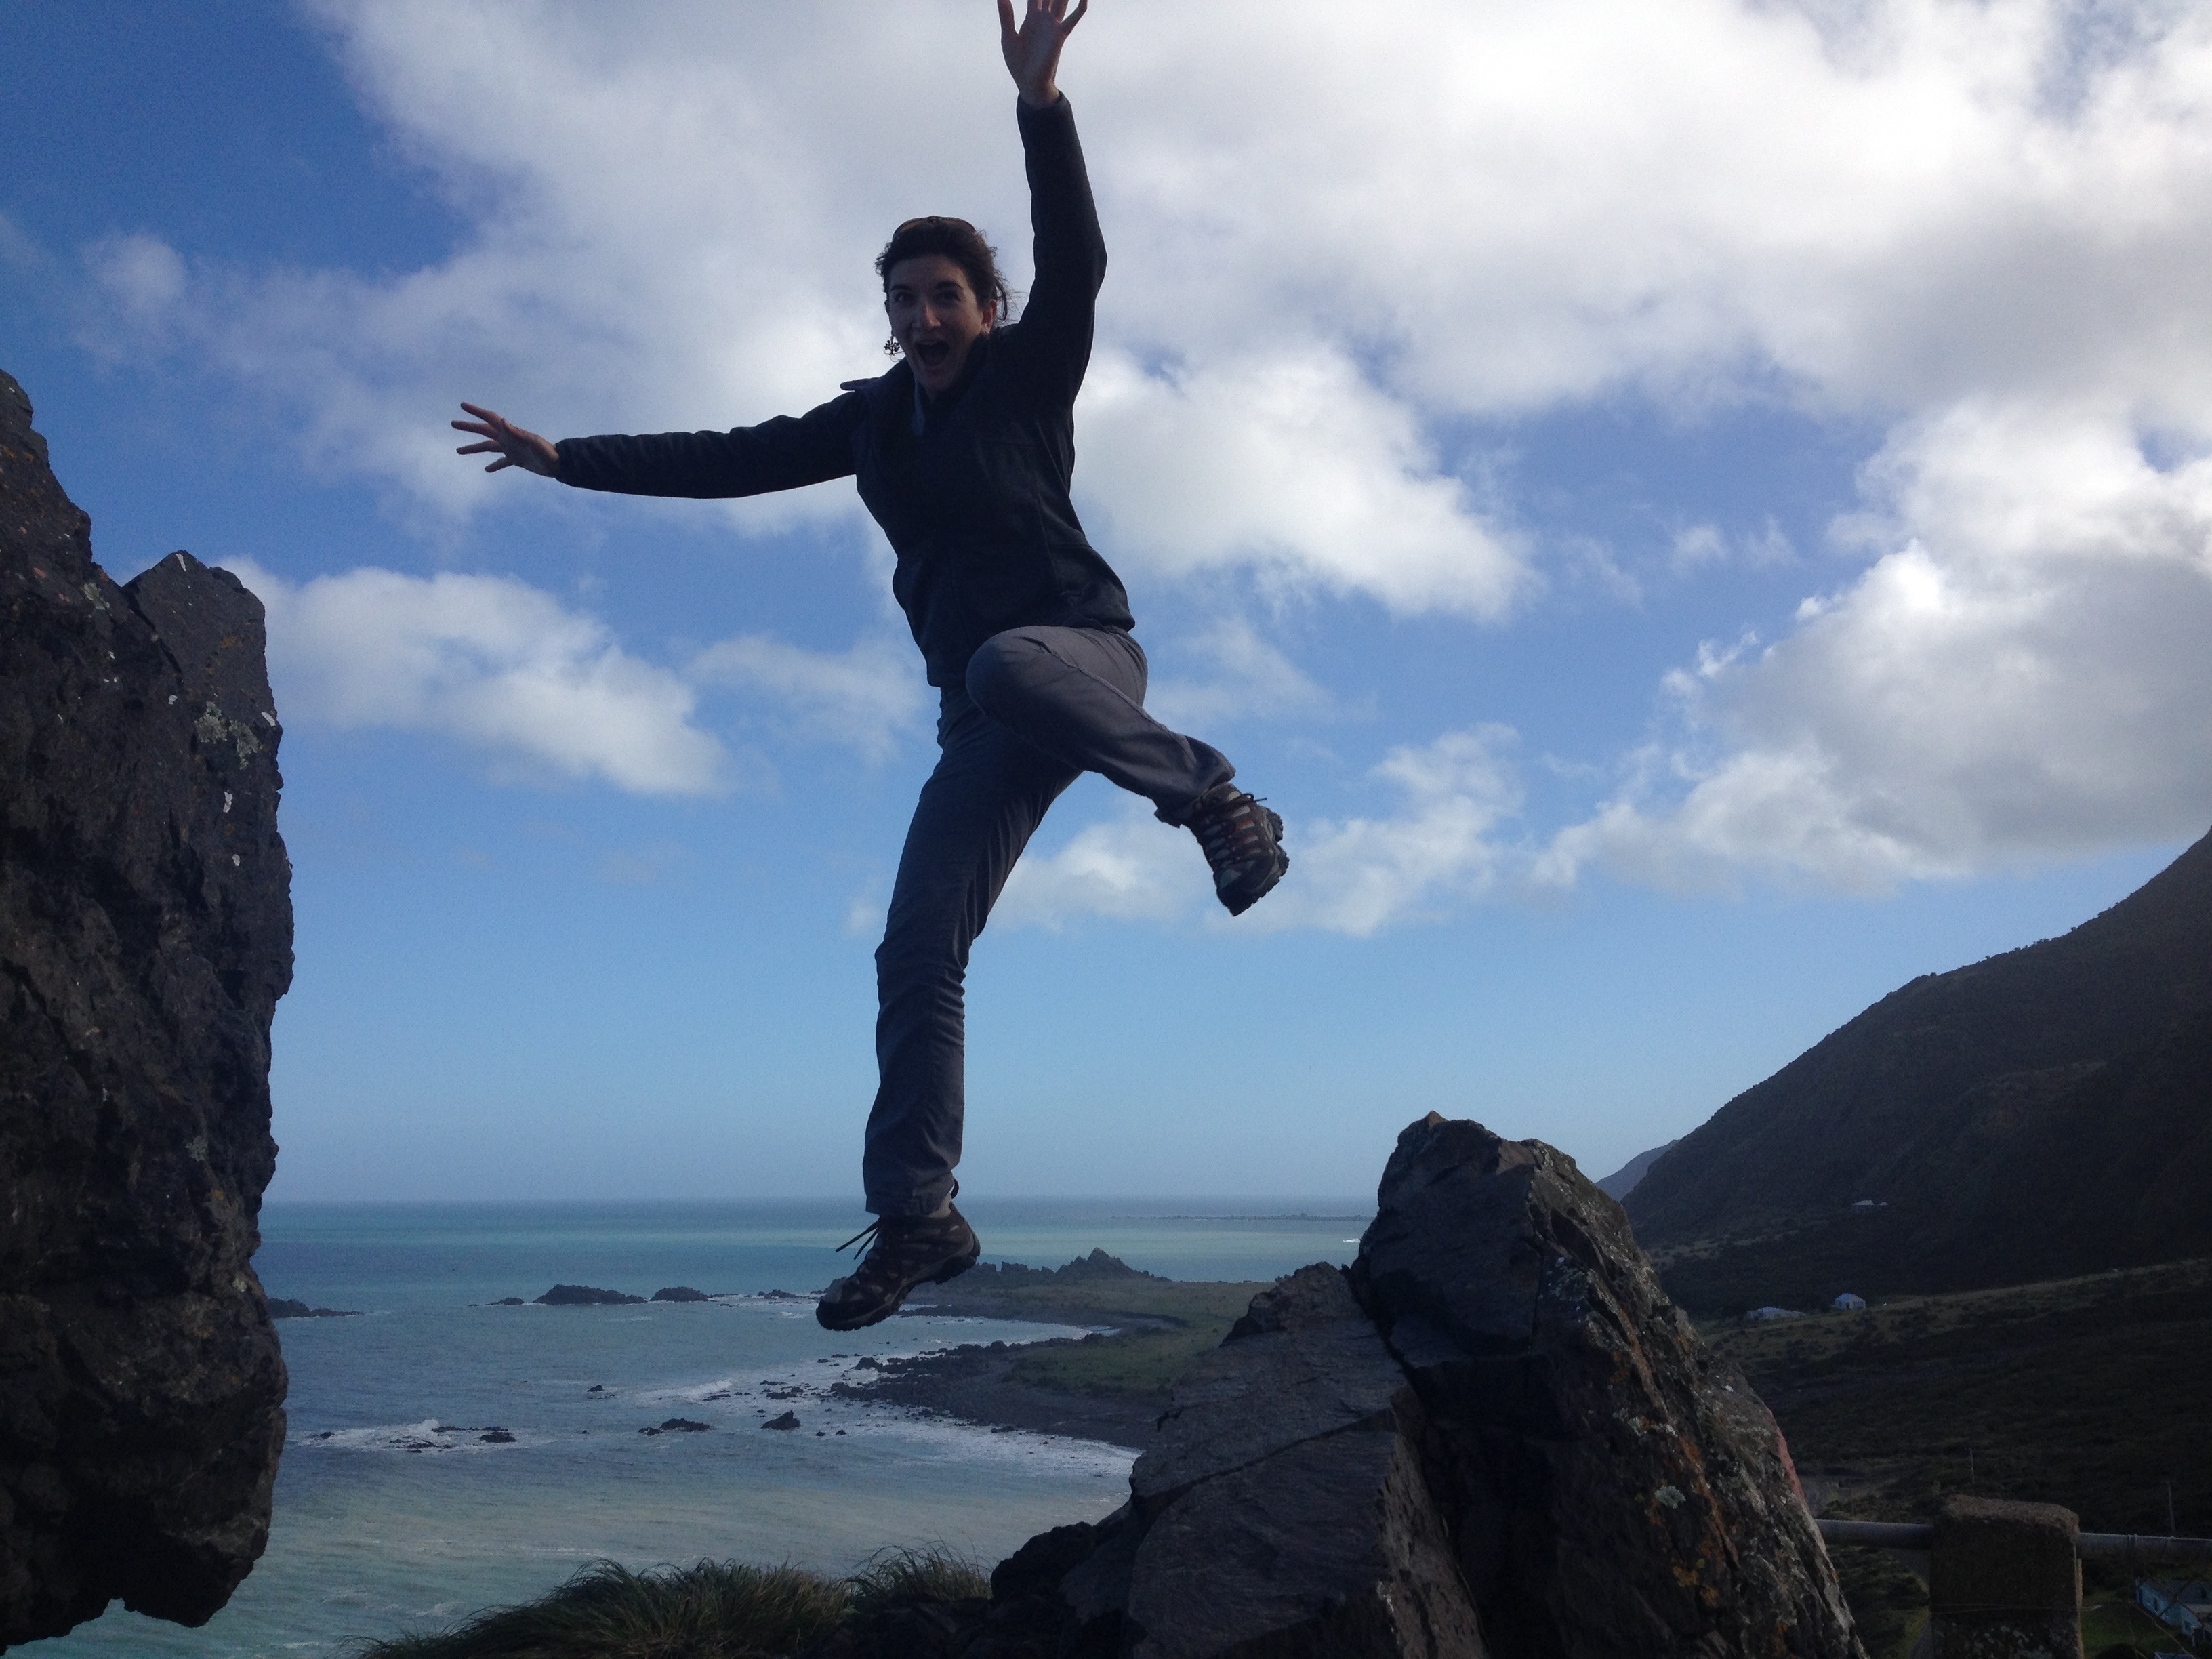 Catching air in New Zealand